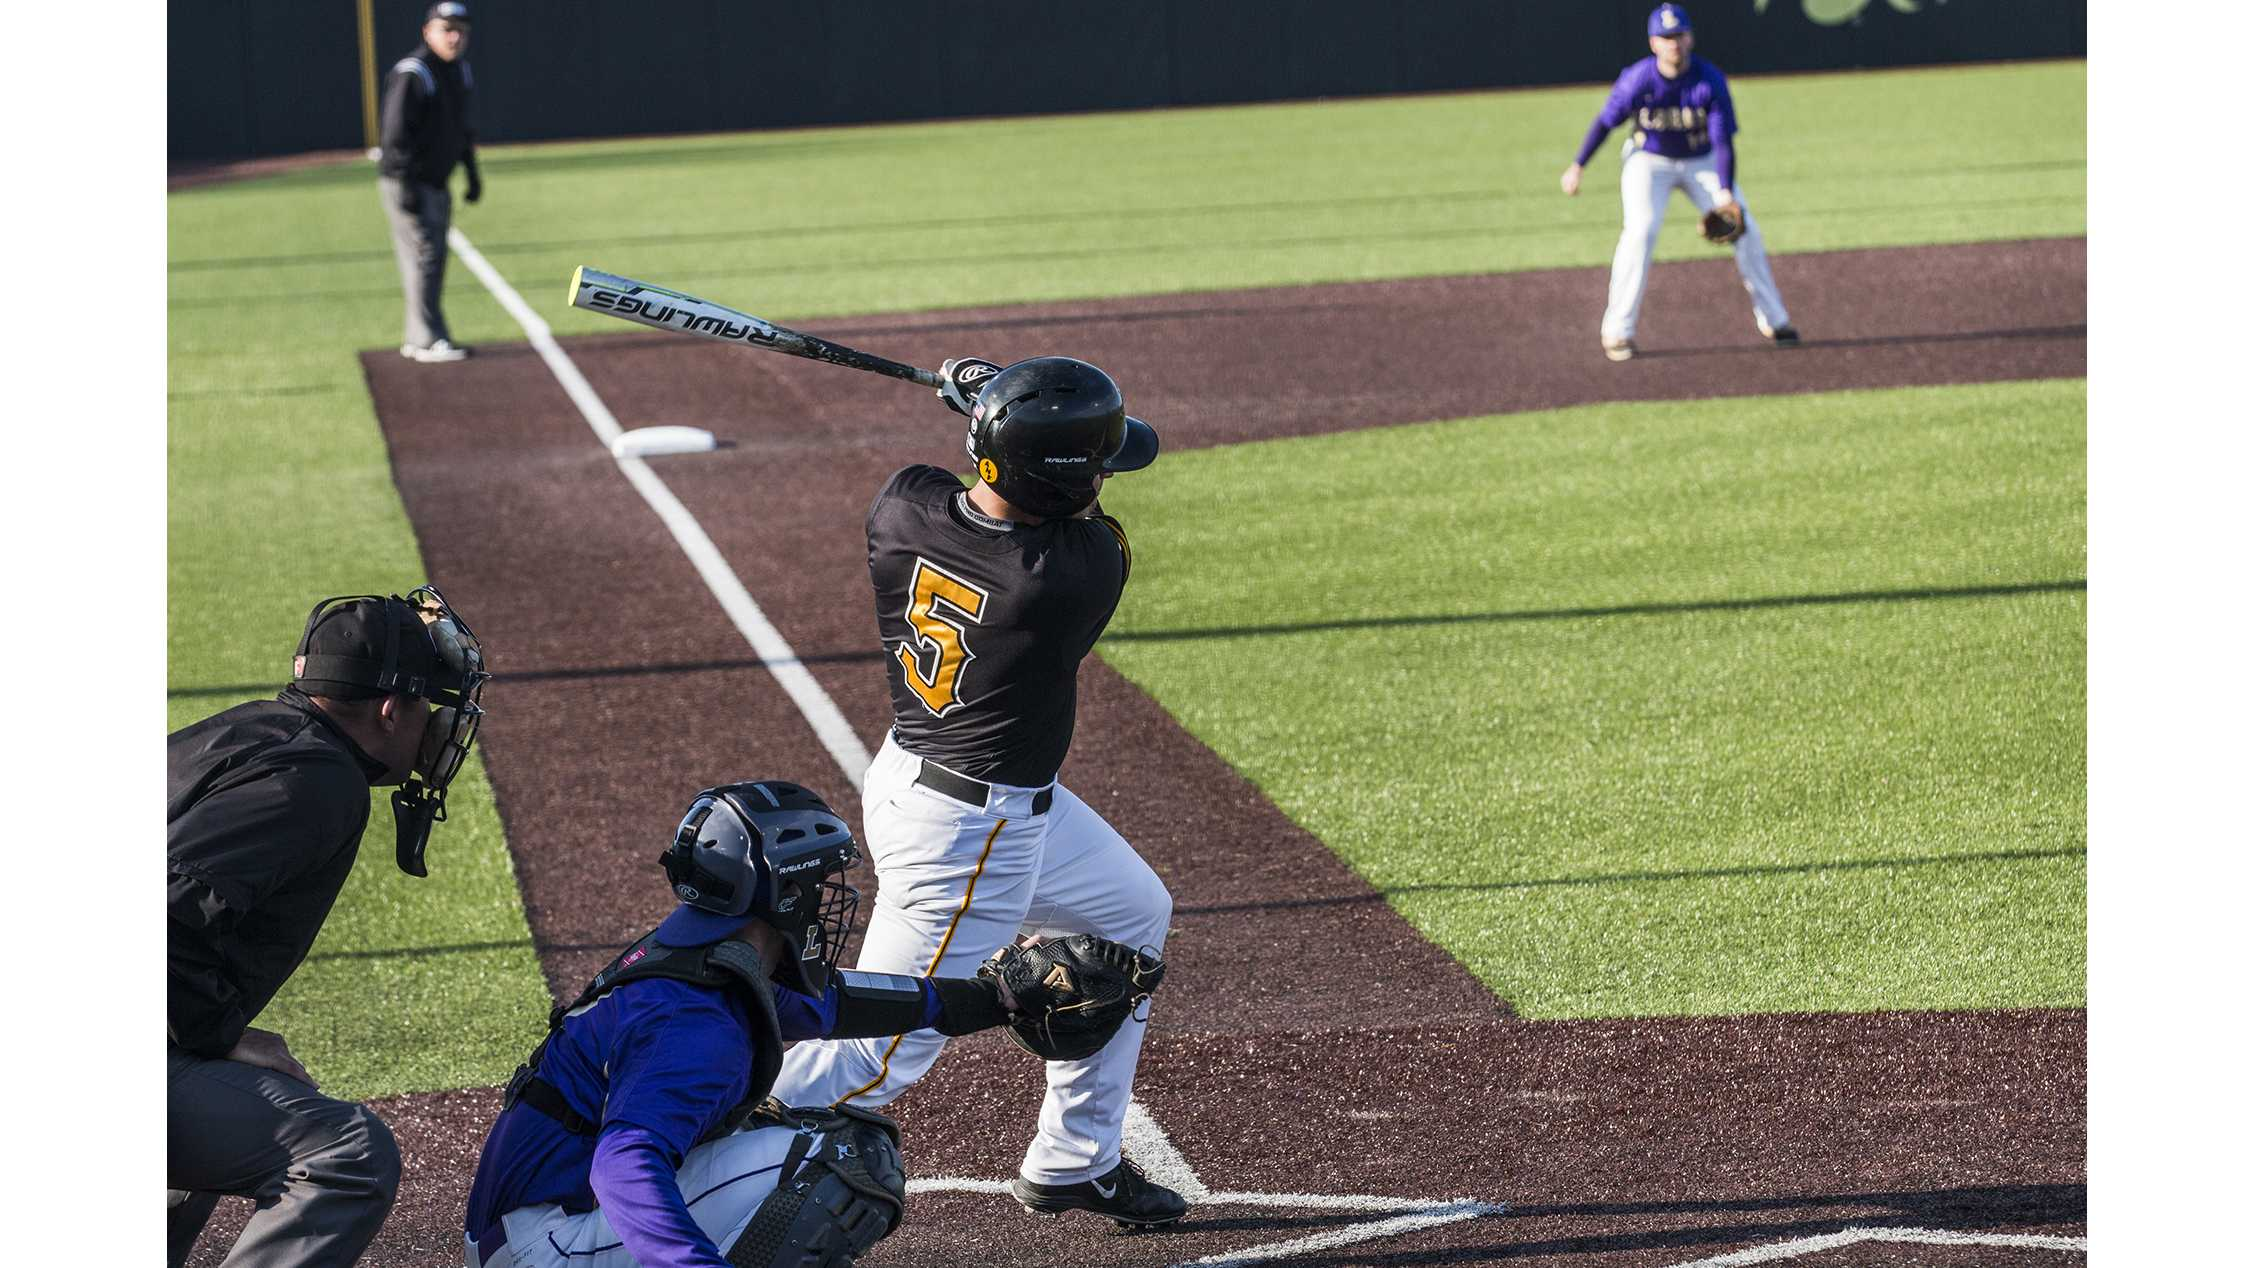 Iowa catcher Tyler Cropley swings at the pitch during men's baseball Iowa vs. Loras at Duane Banks Field on March 21, 2018. The Hawkeyes defeated the Duhawks 6-4. (Katina Zentz/The Daily Iowan) (Katina Zentz/Daily Iowan)